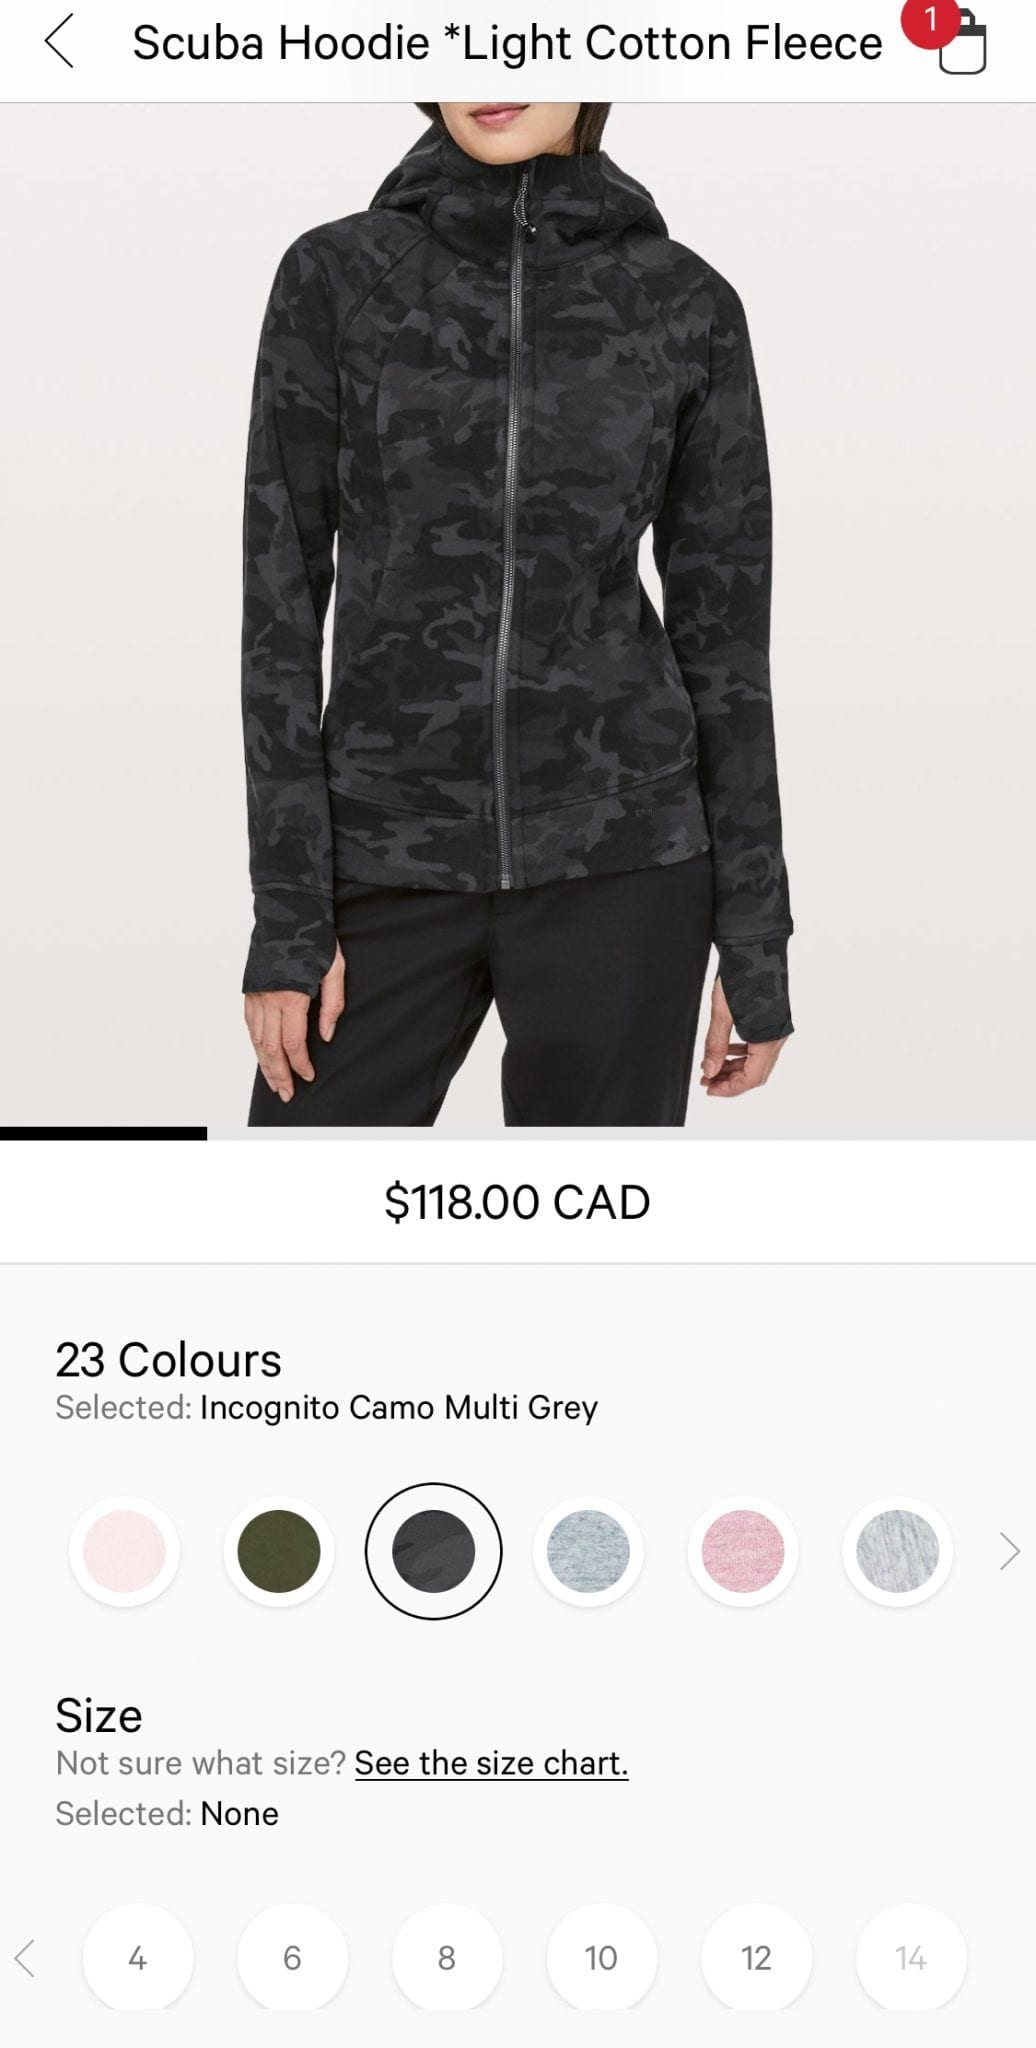 Lululemon Scuba Hoodie Incognito Camo in size 14